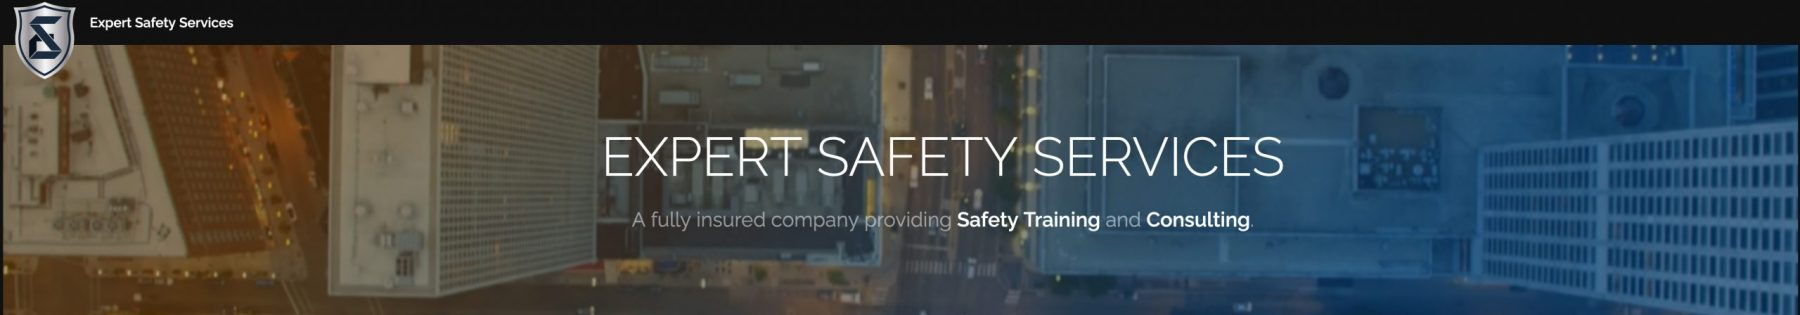 Expert Safety Services